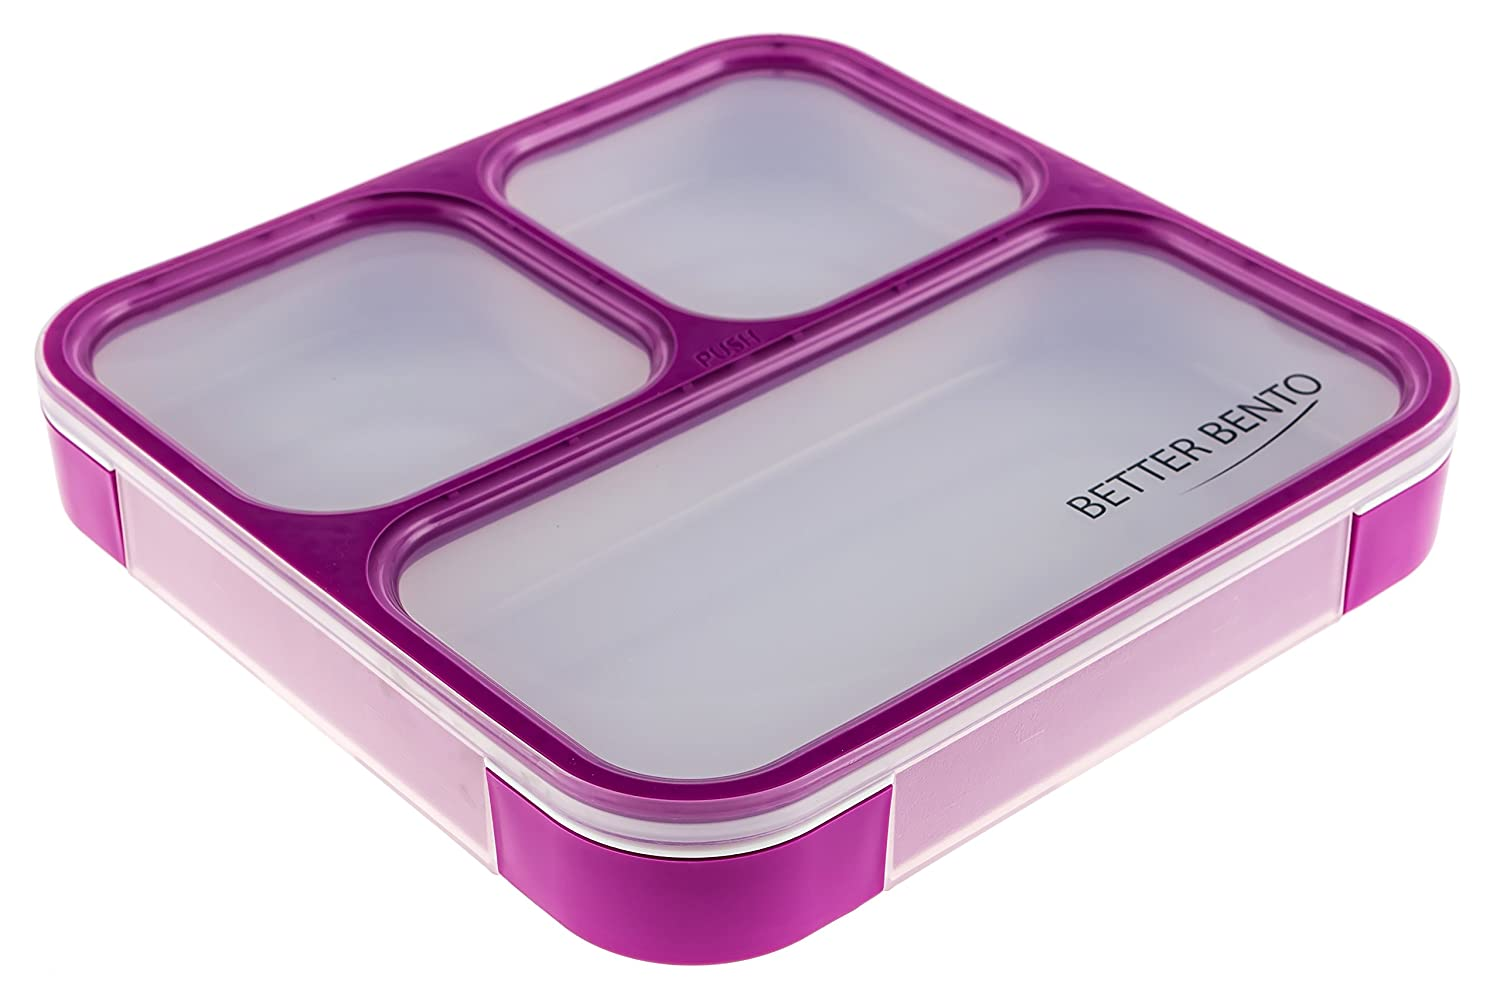 Better Bento Lunch Box - Great for School, Portion Control and Meal Prep Purple B007P